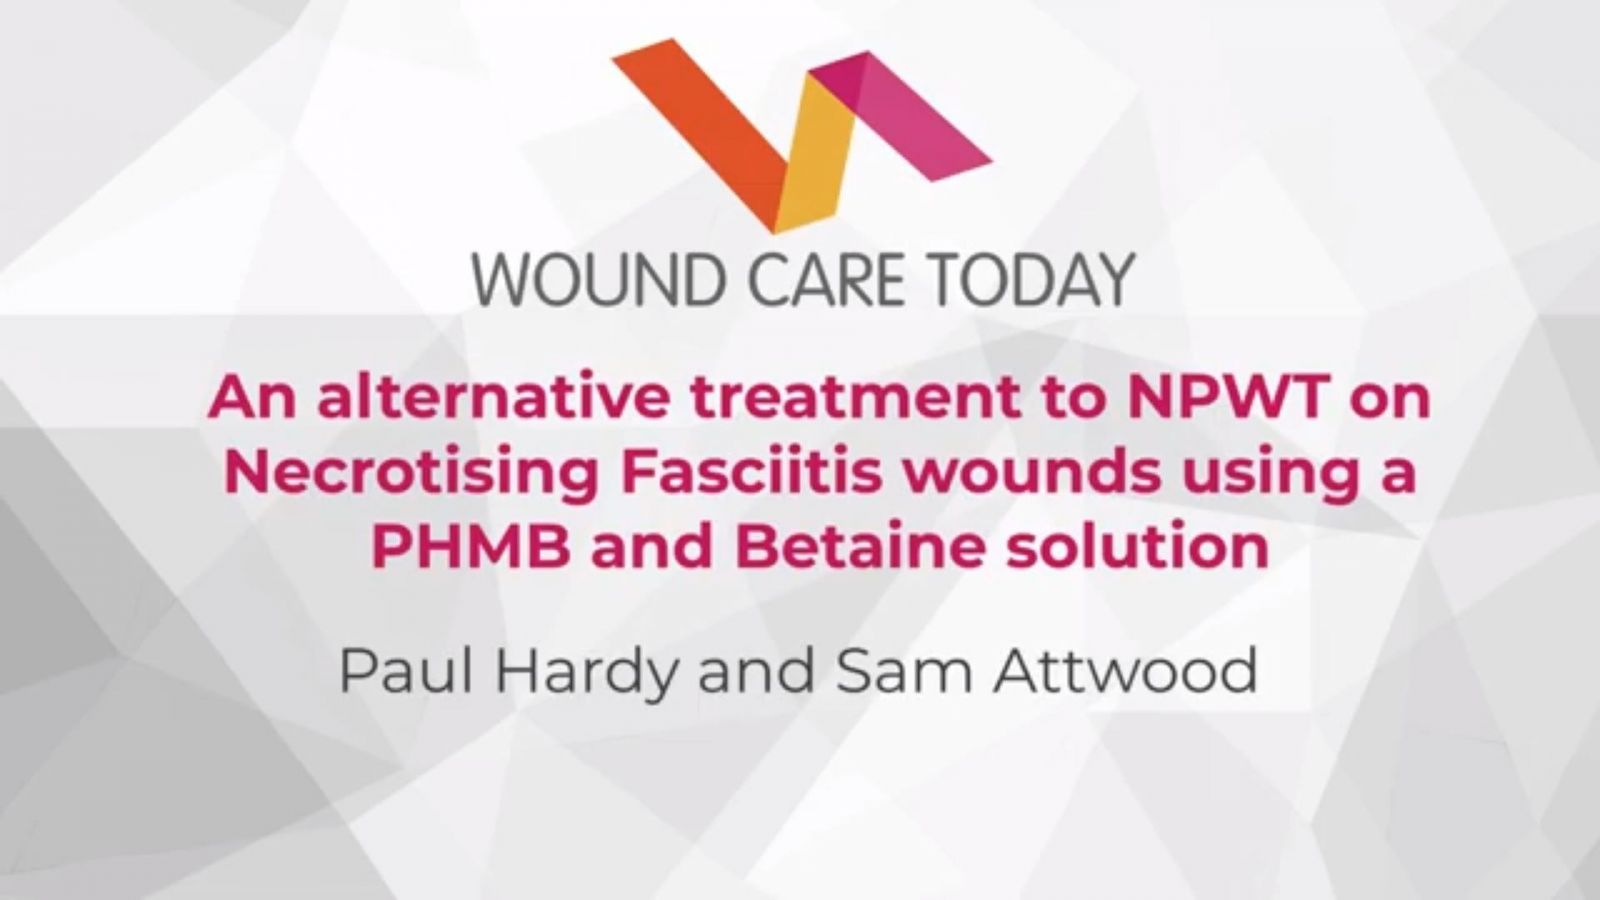 an-alternative-treatment-to-npwt-on-necrotising-fasciitis-wounds-using-a-phmb-and-betaine-solution